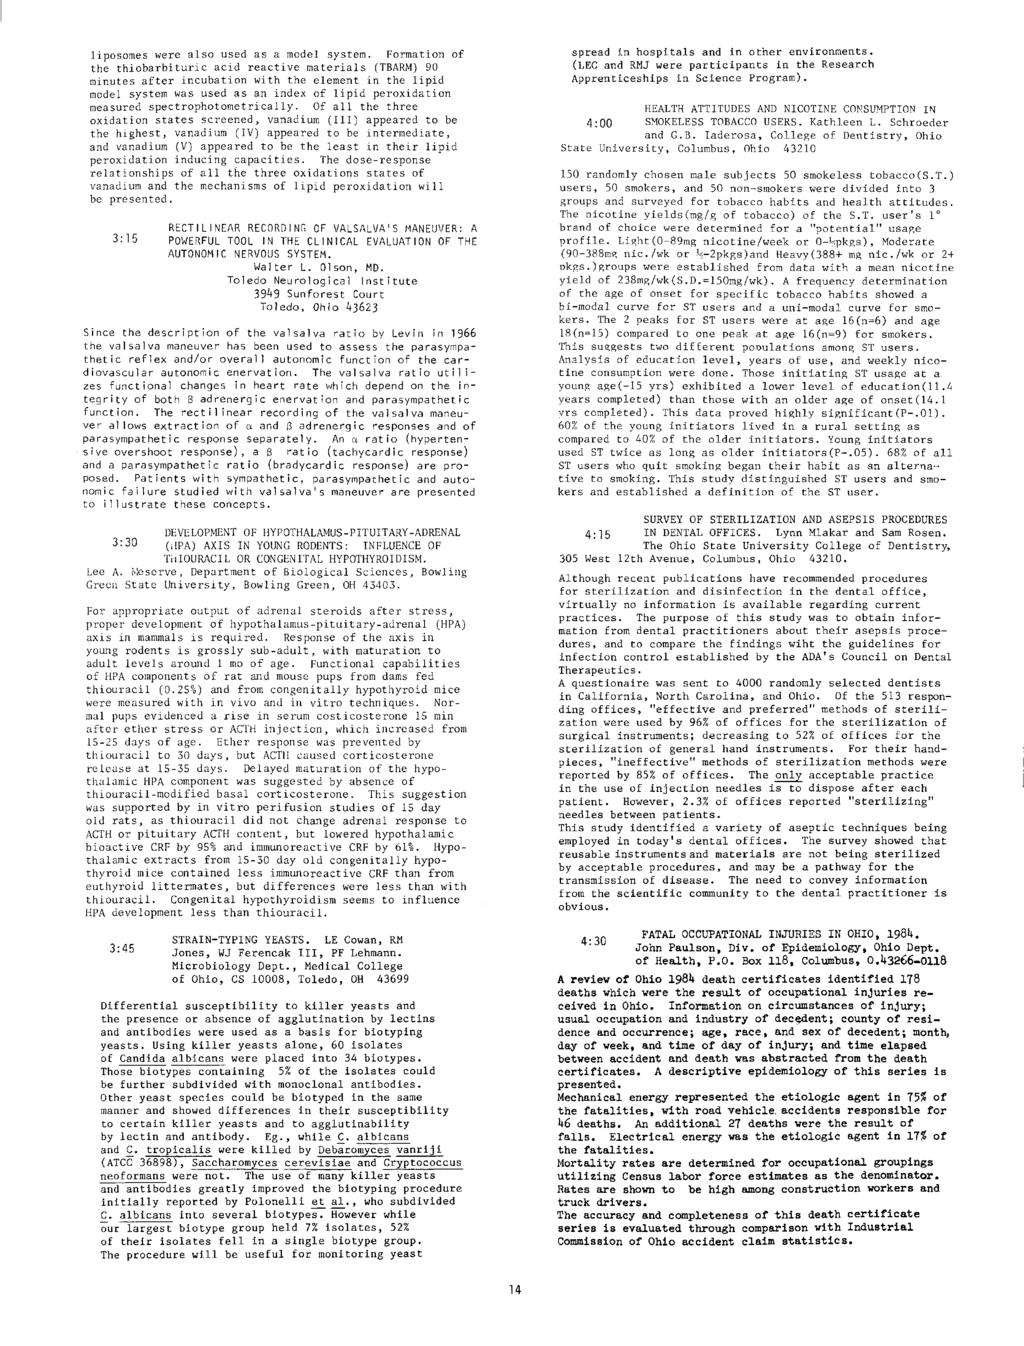 THE OHIO JOURNAL OF SCIENCE - PDF